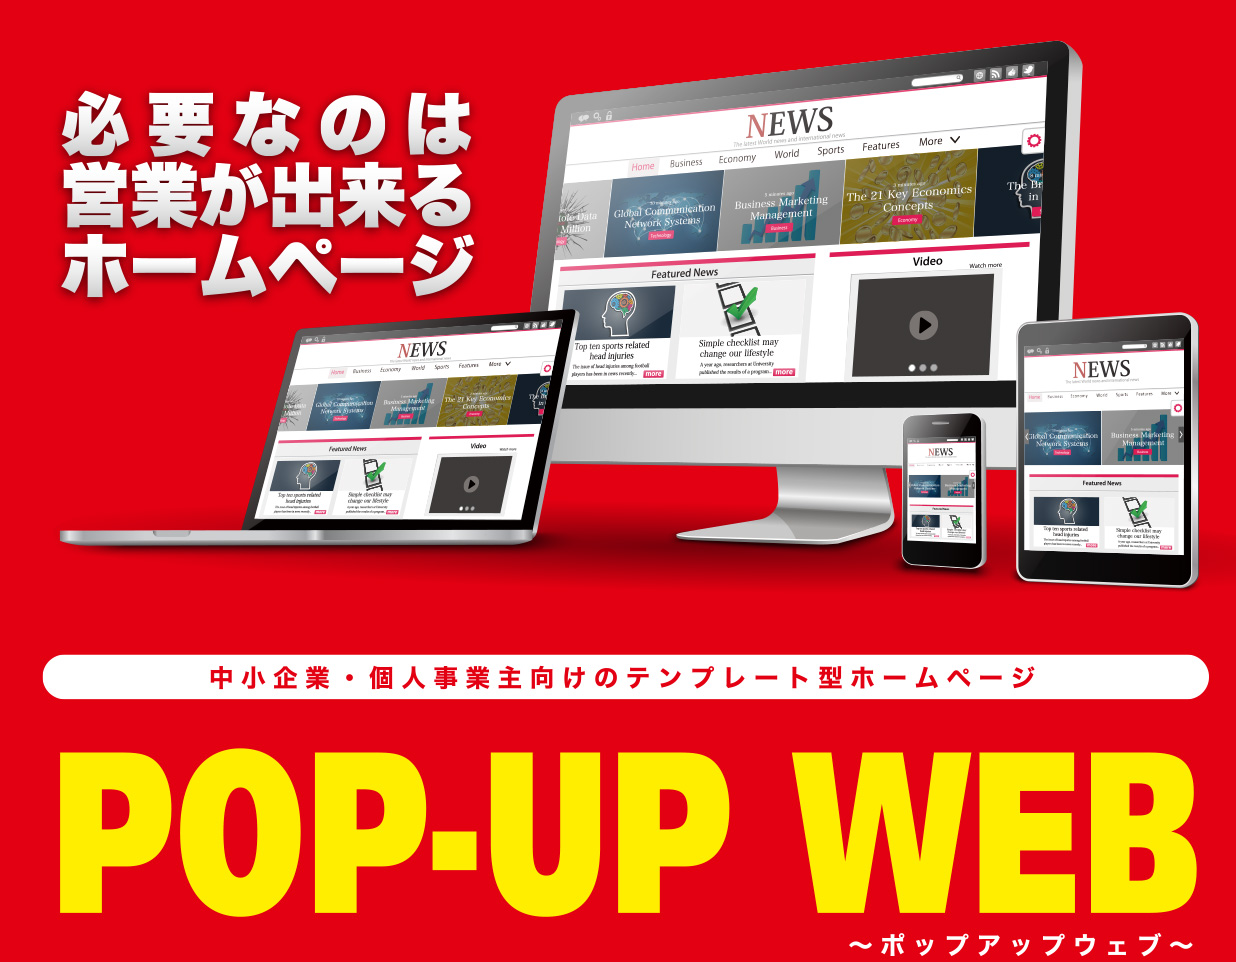 POP-UP WEB